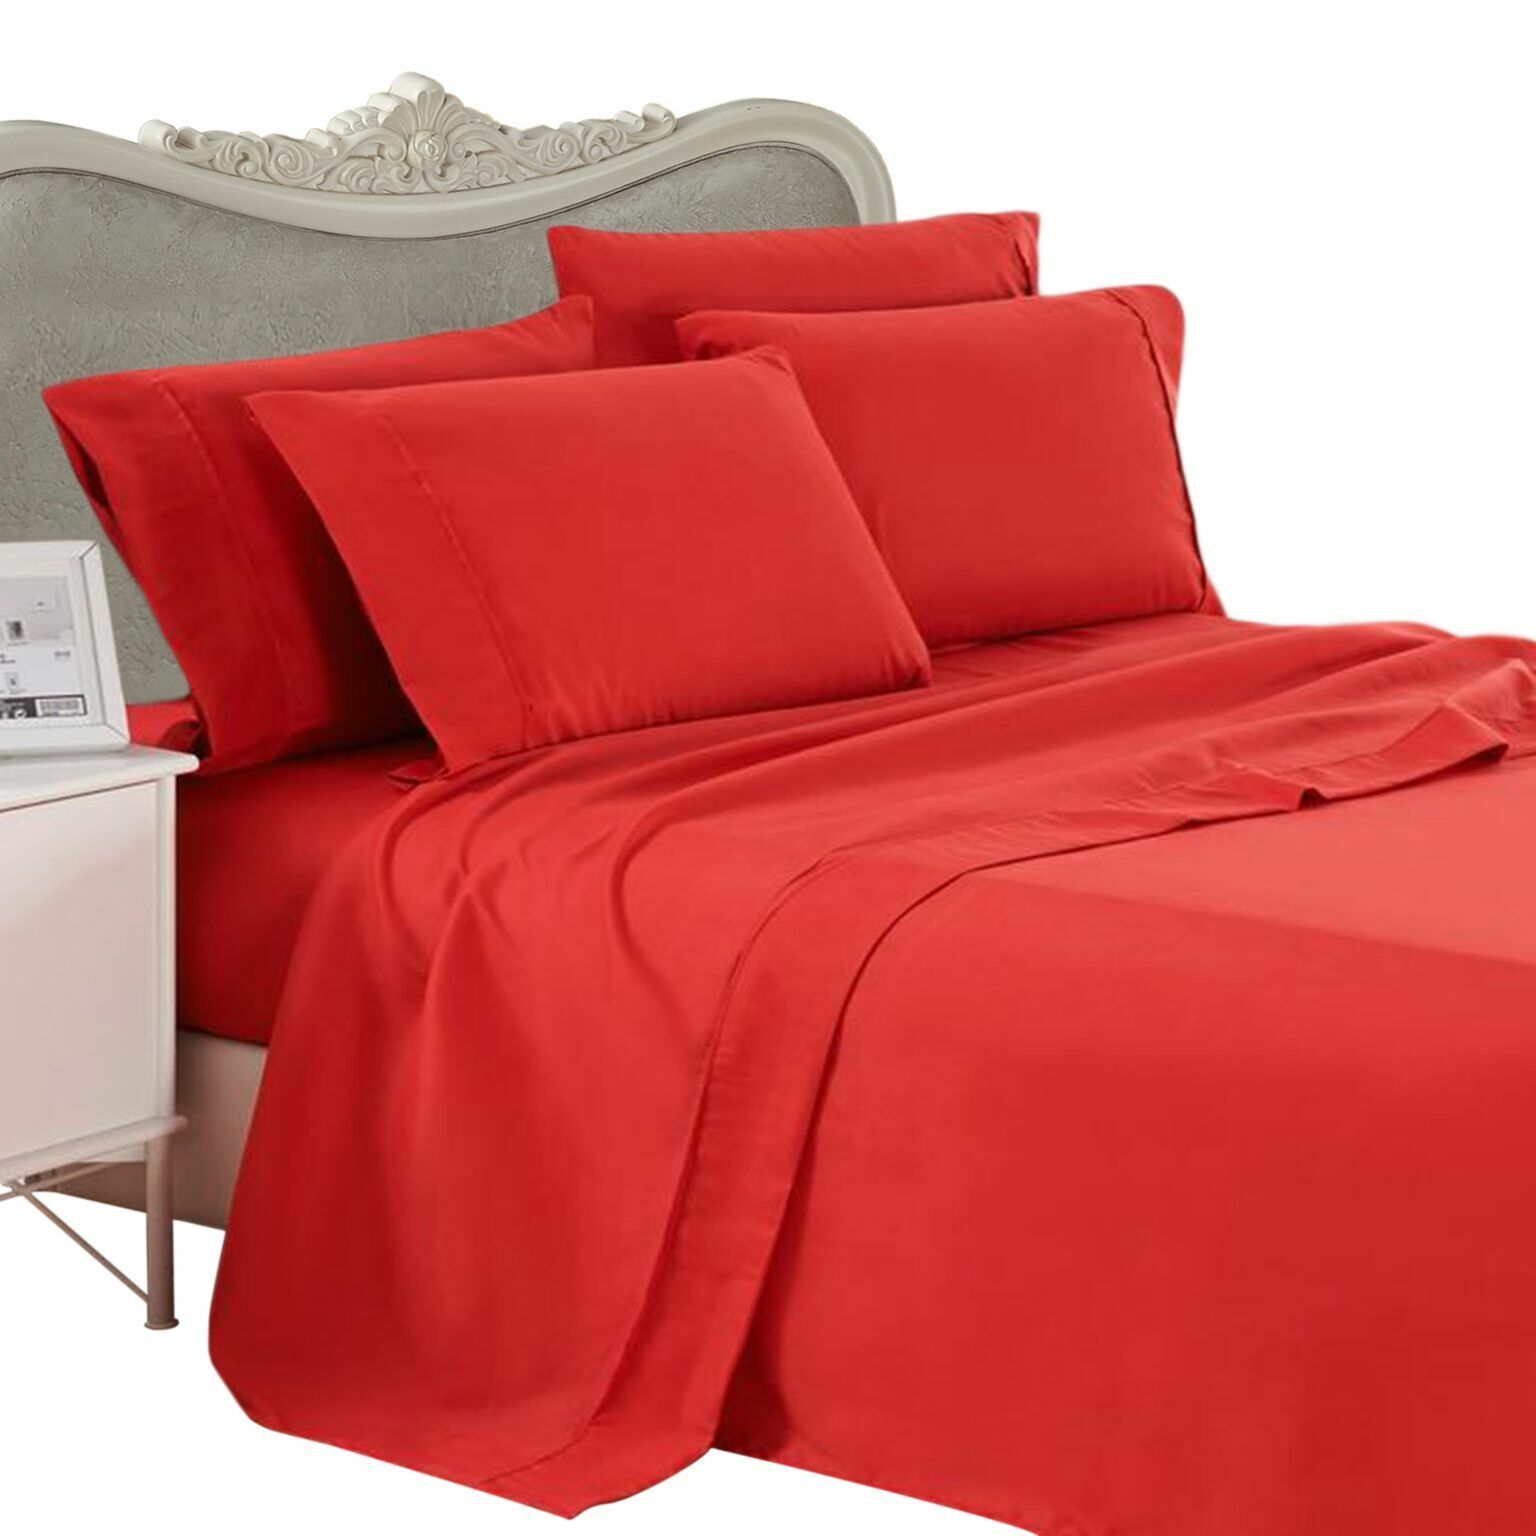 1000 Thread Count 100% Egyptian Cotton Bed Sheet Set 1000 TC KING Red Solid